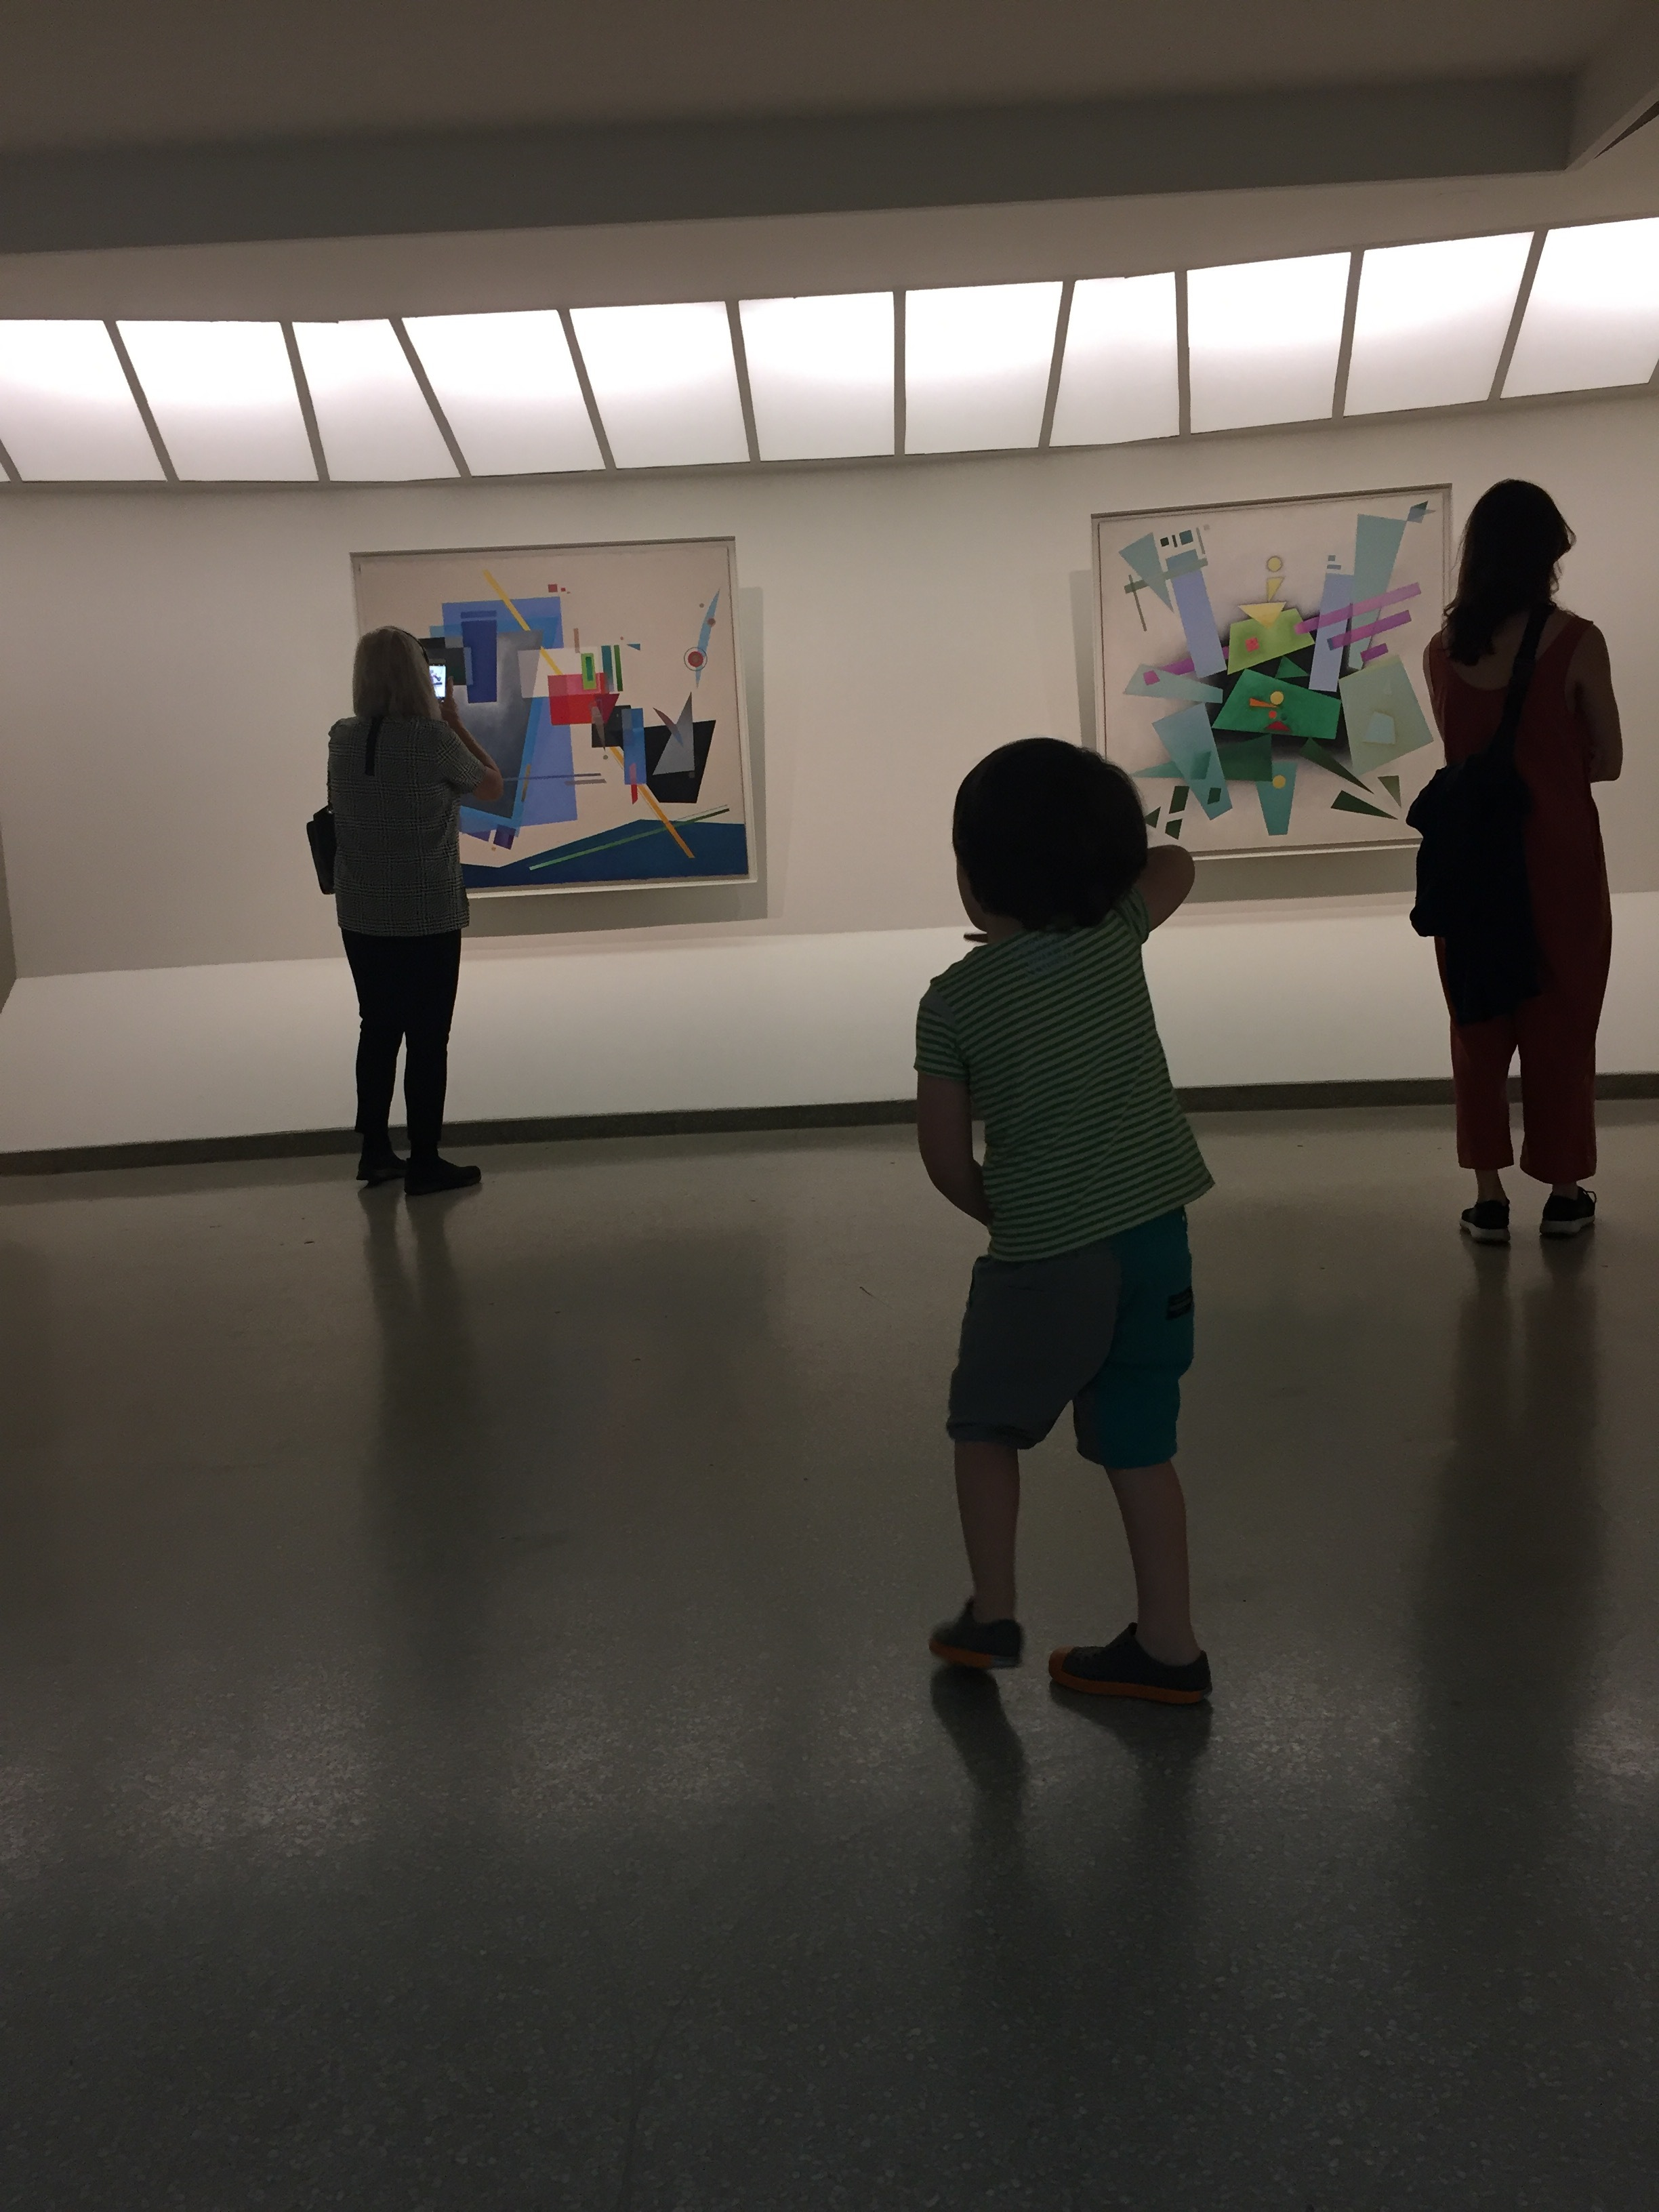 Lyric was kind of dancing to Kandinsky paintings, which was oddly perfect